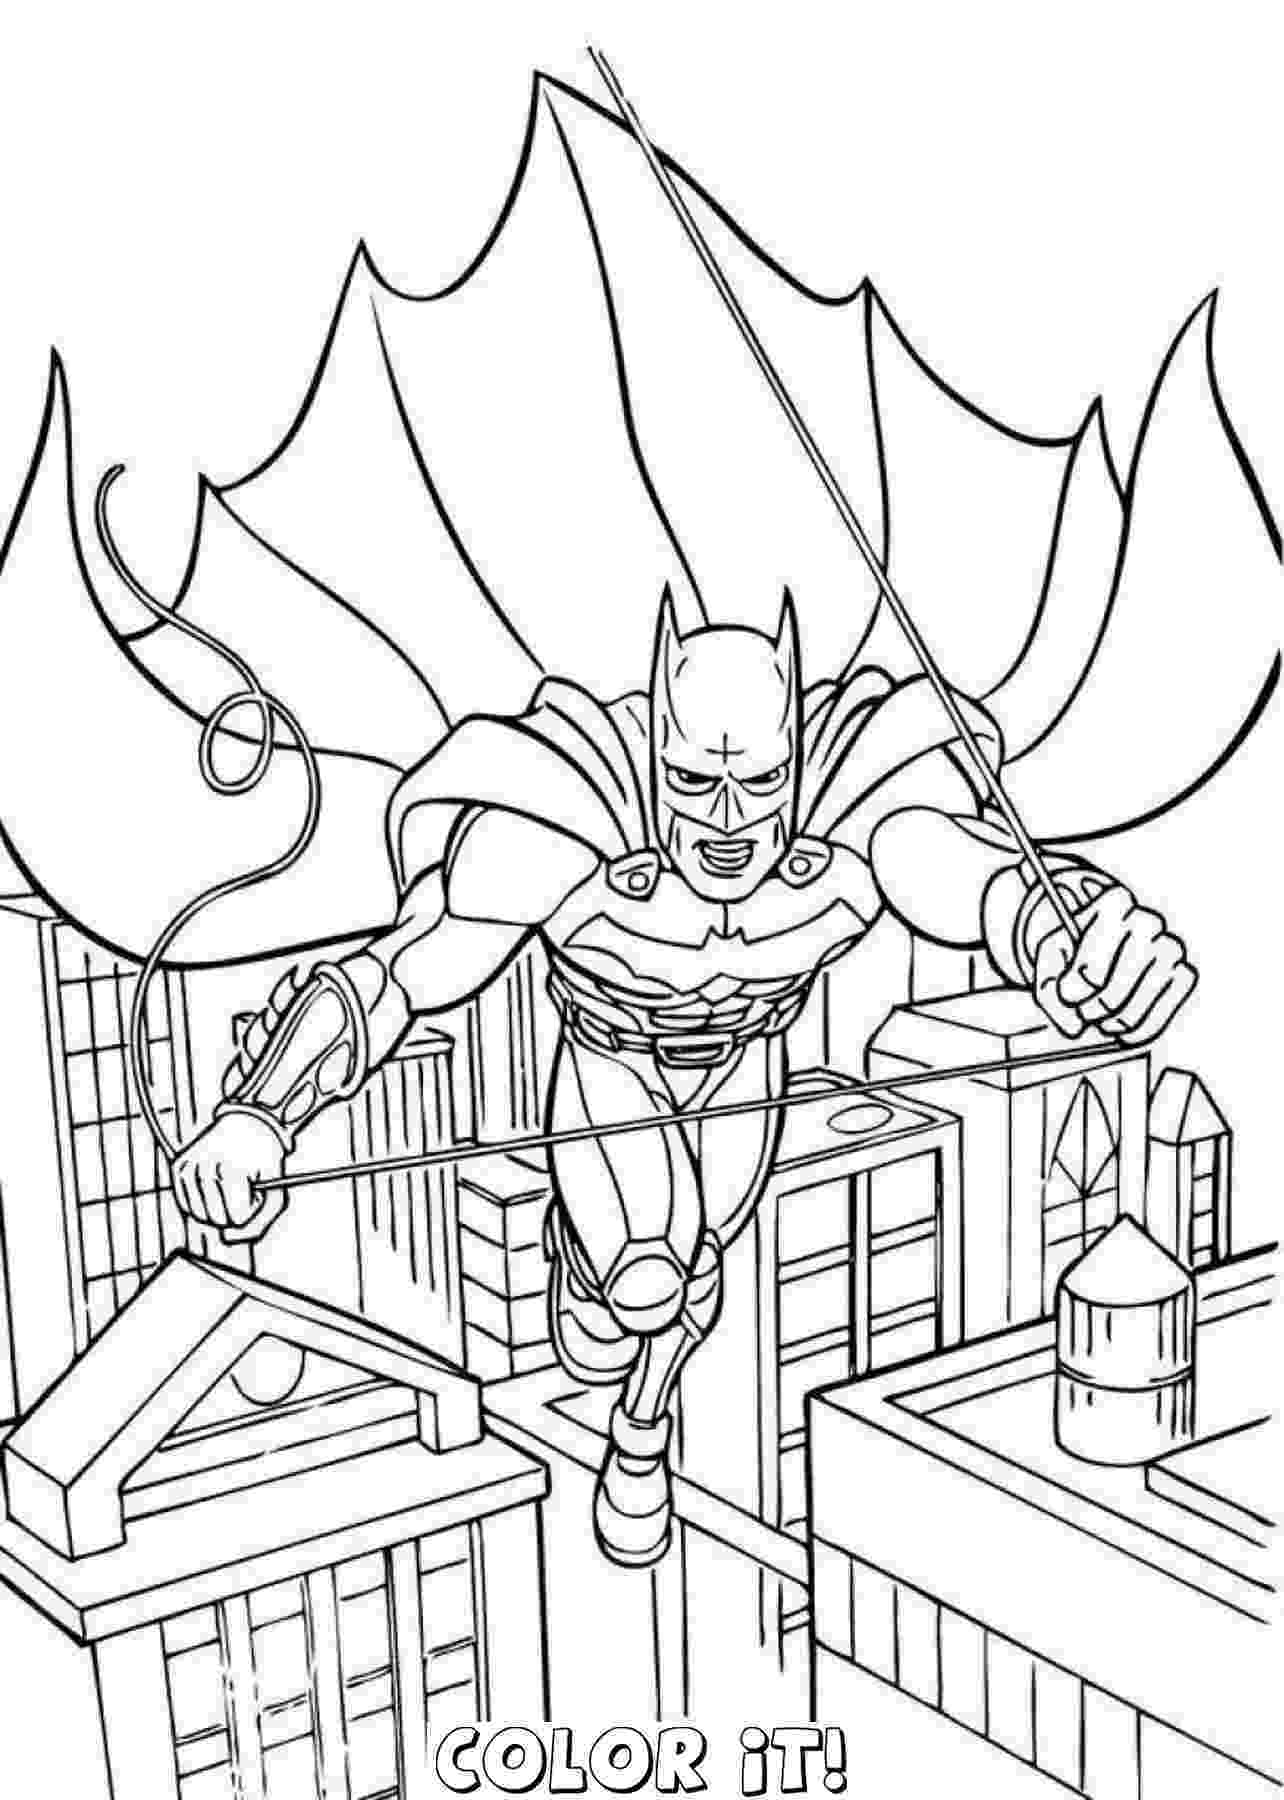 batman printables lego batman coloring pages to download and print for free batman printables